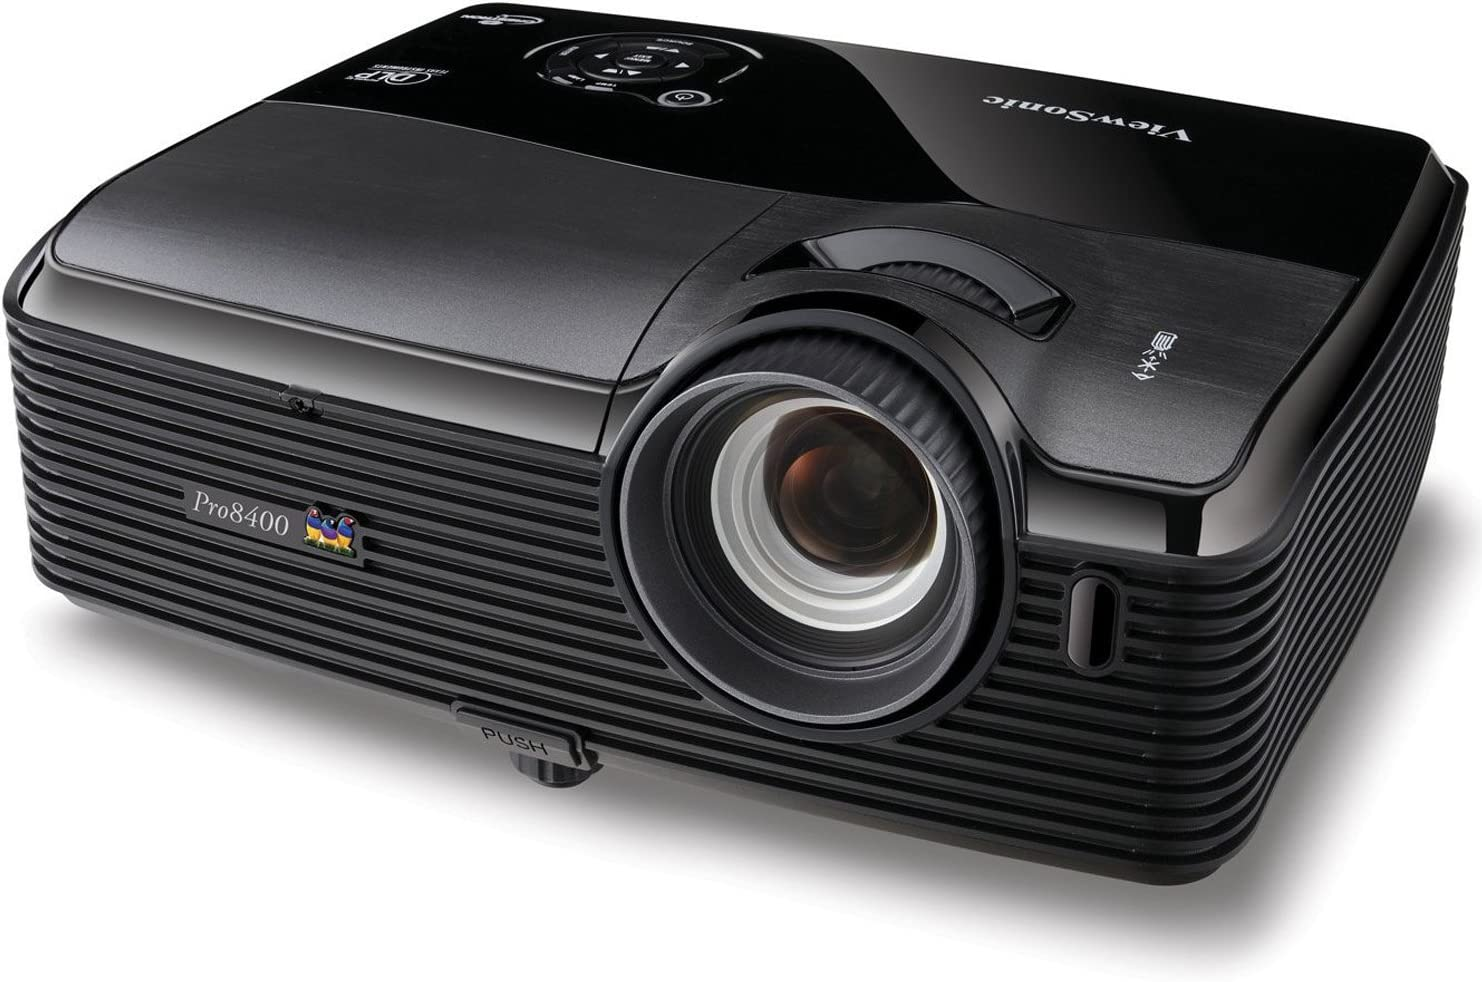 ViewSonic Arlington Mall PRO8400 4000 Lumens 1080p Home Theater HDMI security Projector